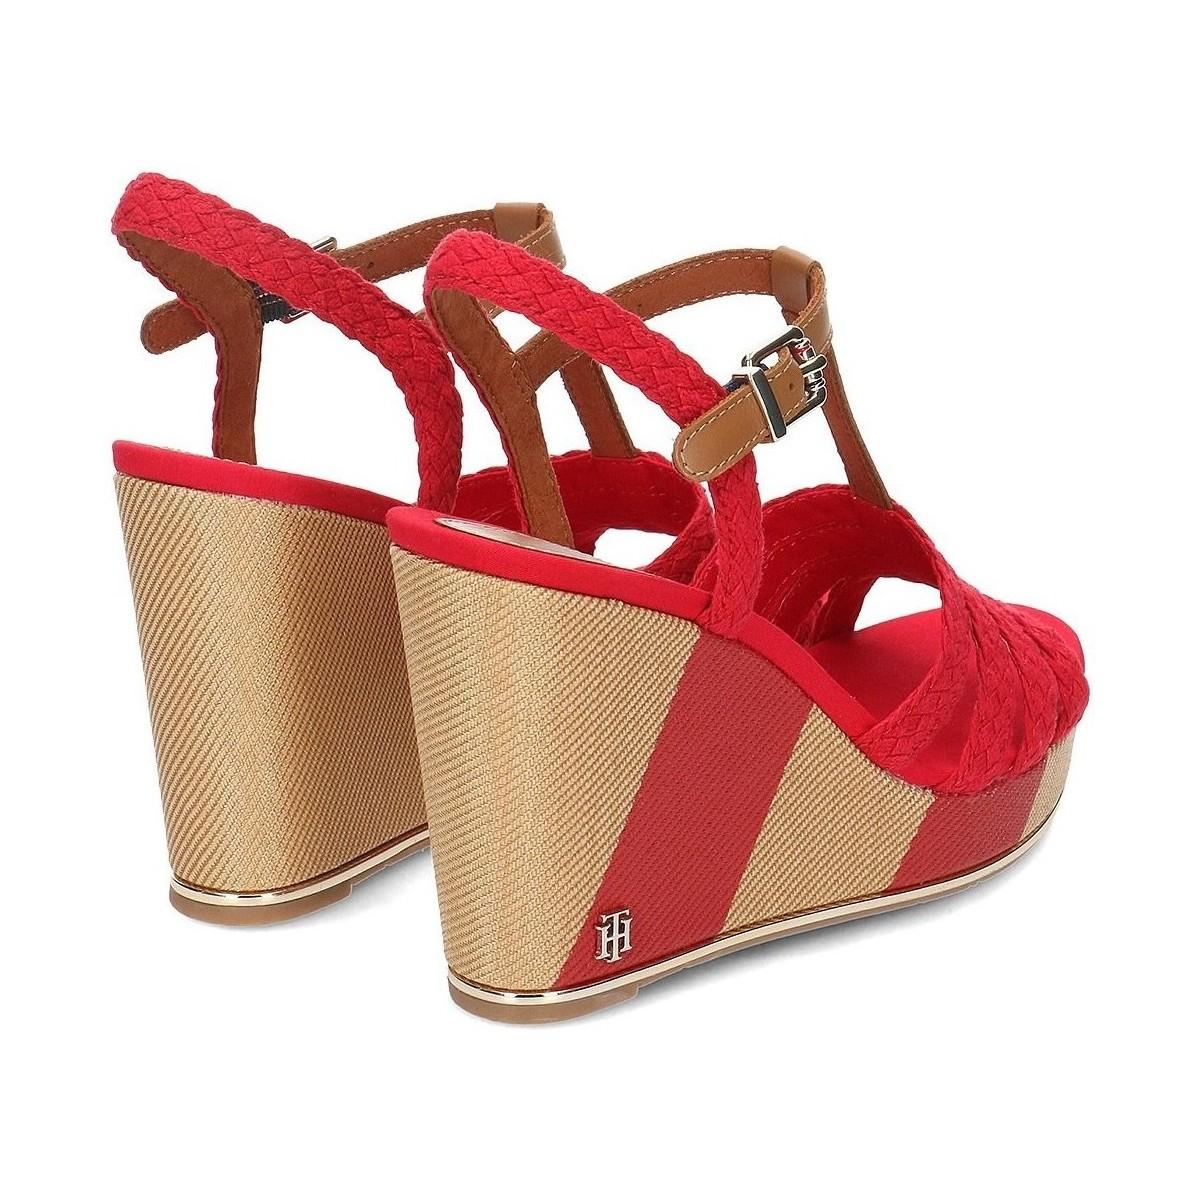 c1a356e2b Tommy Hilfiger - Printed Wedge Women's Clogs (shoes) In Red - Lyst. View  fullscreen